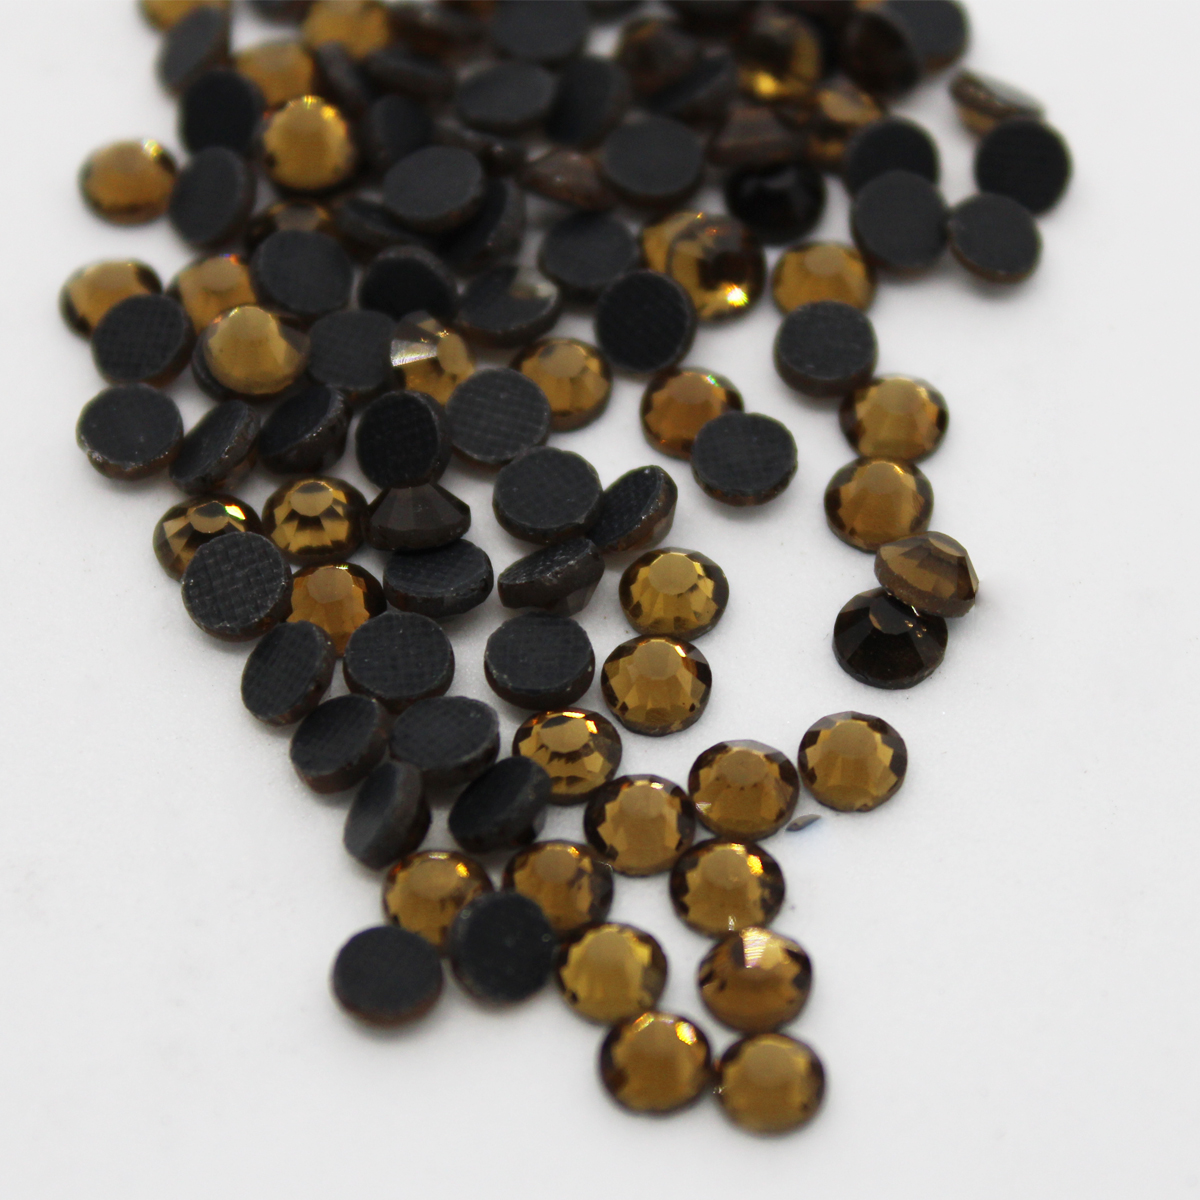 Smoked Topaz Large Package Crystal Glass DMC Machine Cut Hotfix Rhinestone Hot Fix Iron On Rhinestone Garment Sewing Stone hotfix rhinestones smoked topaz ab flatback round glass iron on strass for garment hotfix rhinestones with glue backing